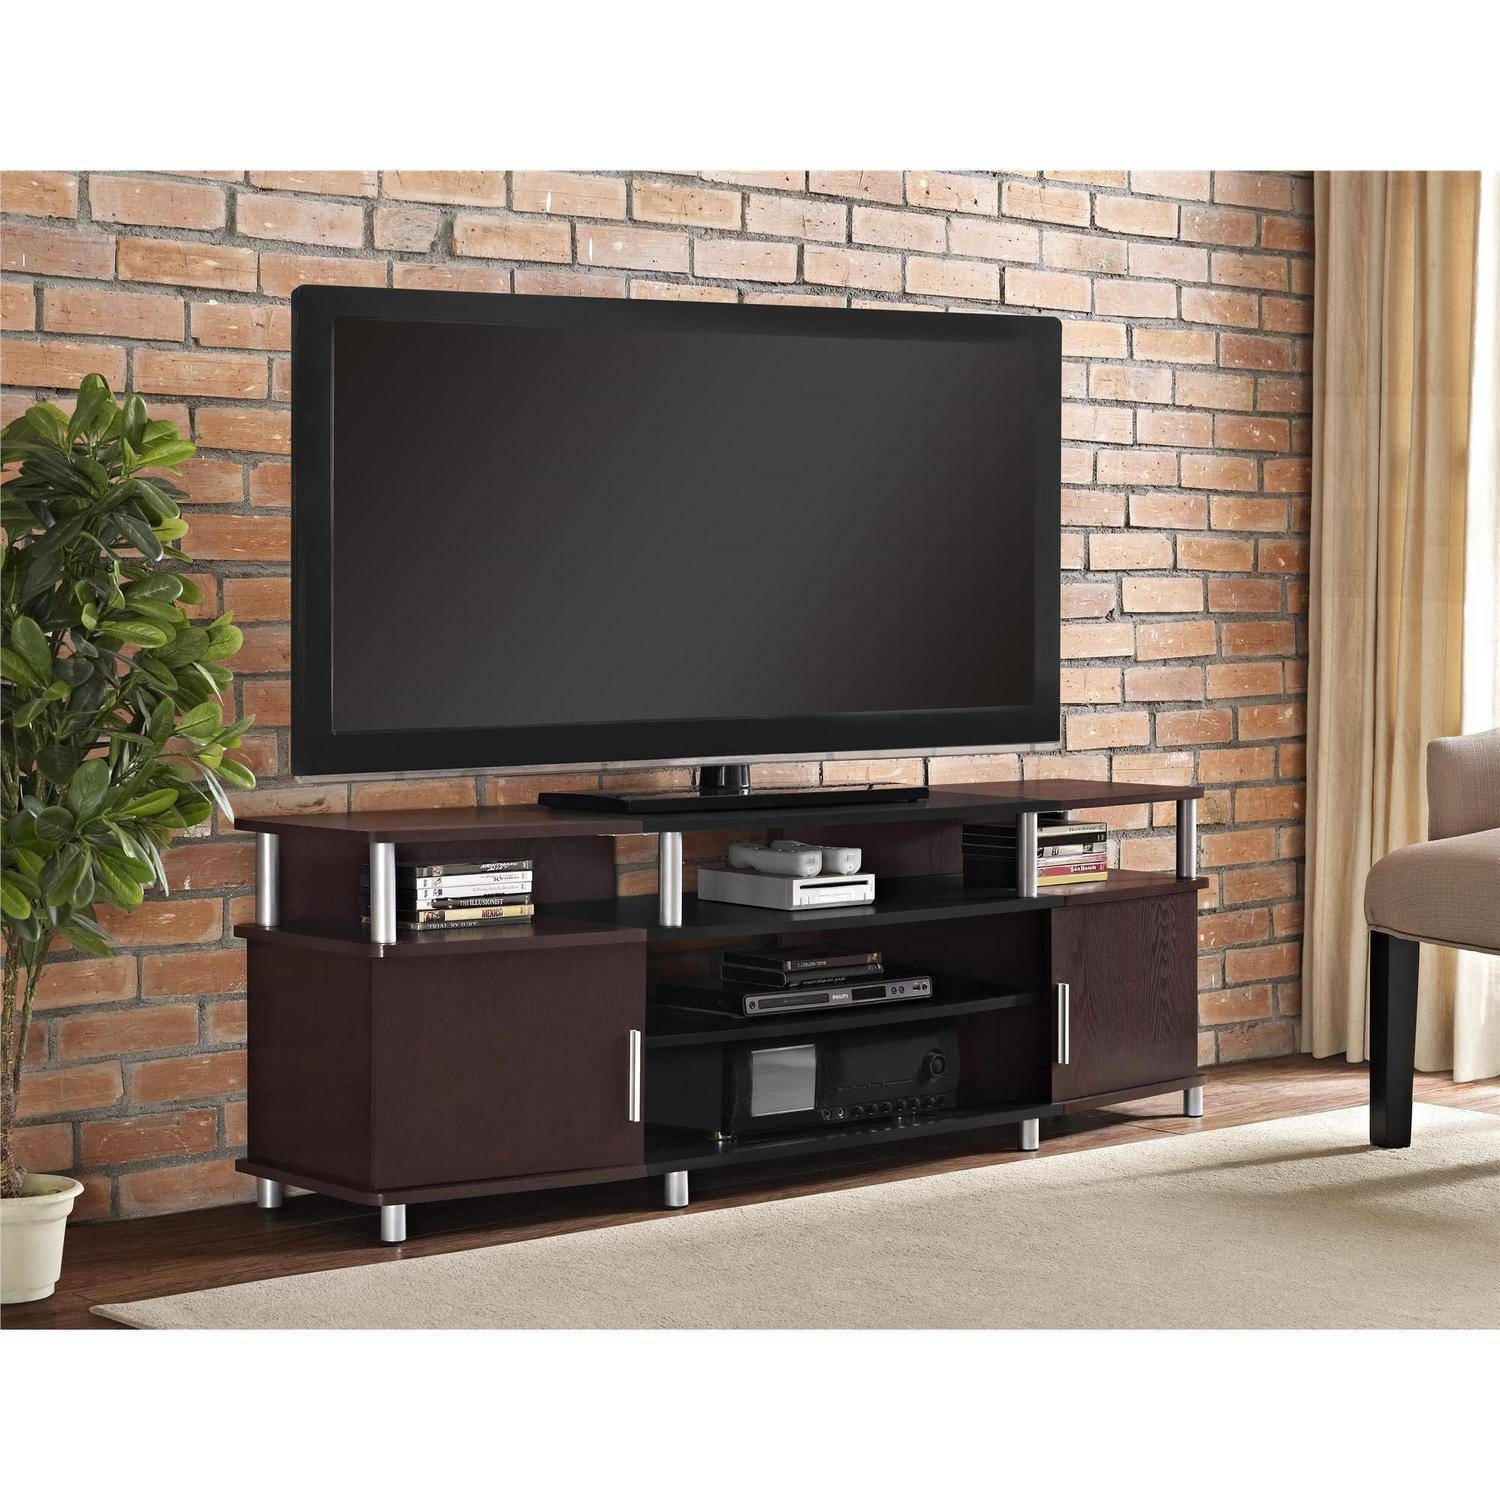 70 Tv Stand Darby Home Co Rhoades 70 Tv Stand Reviews Wayfair within Wide Screen Tv Stands (Image 1 of 15)